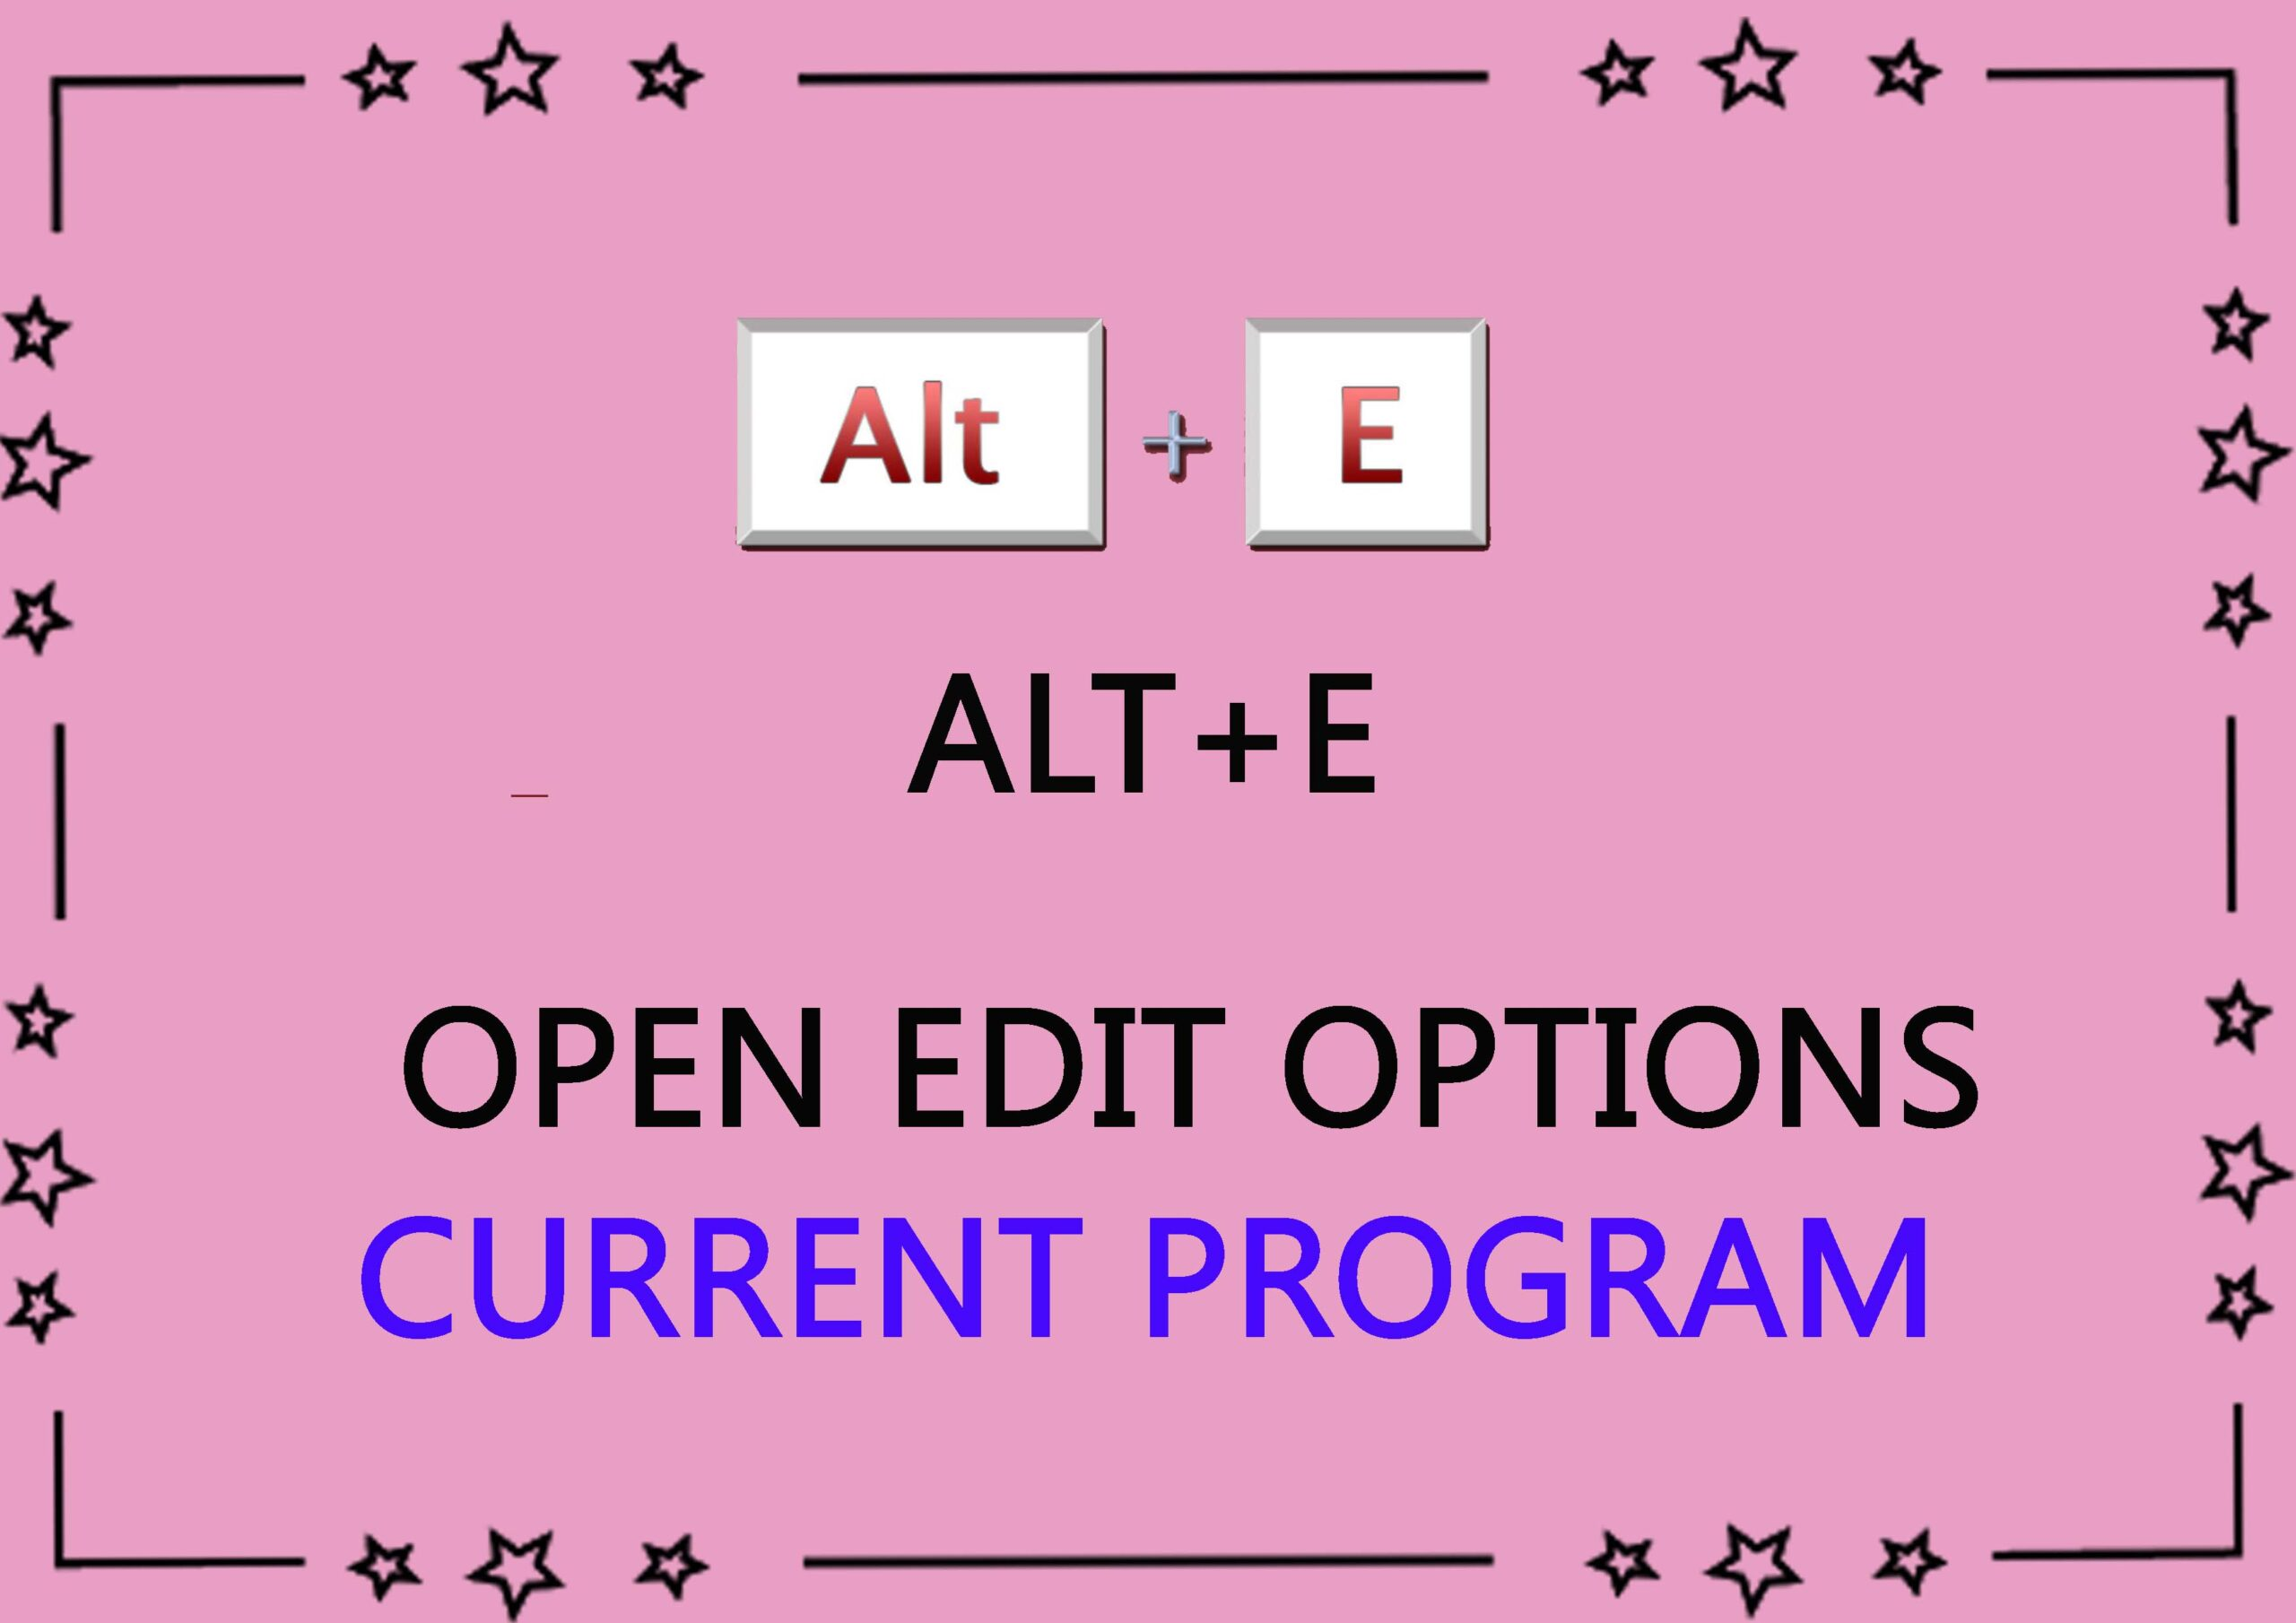 ALT+E OPEN EDIT OPTIONS CURRENT PROGRAM